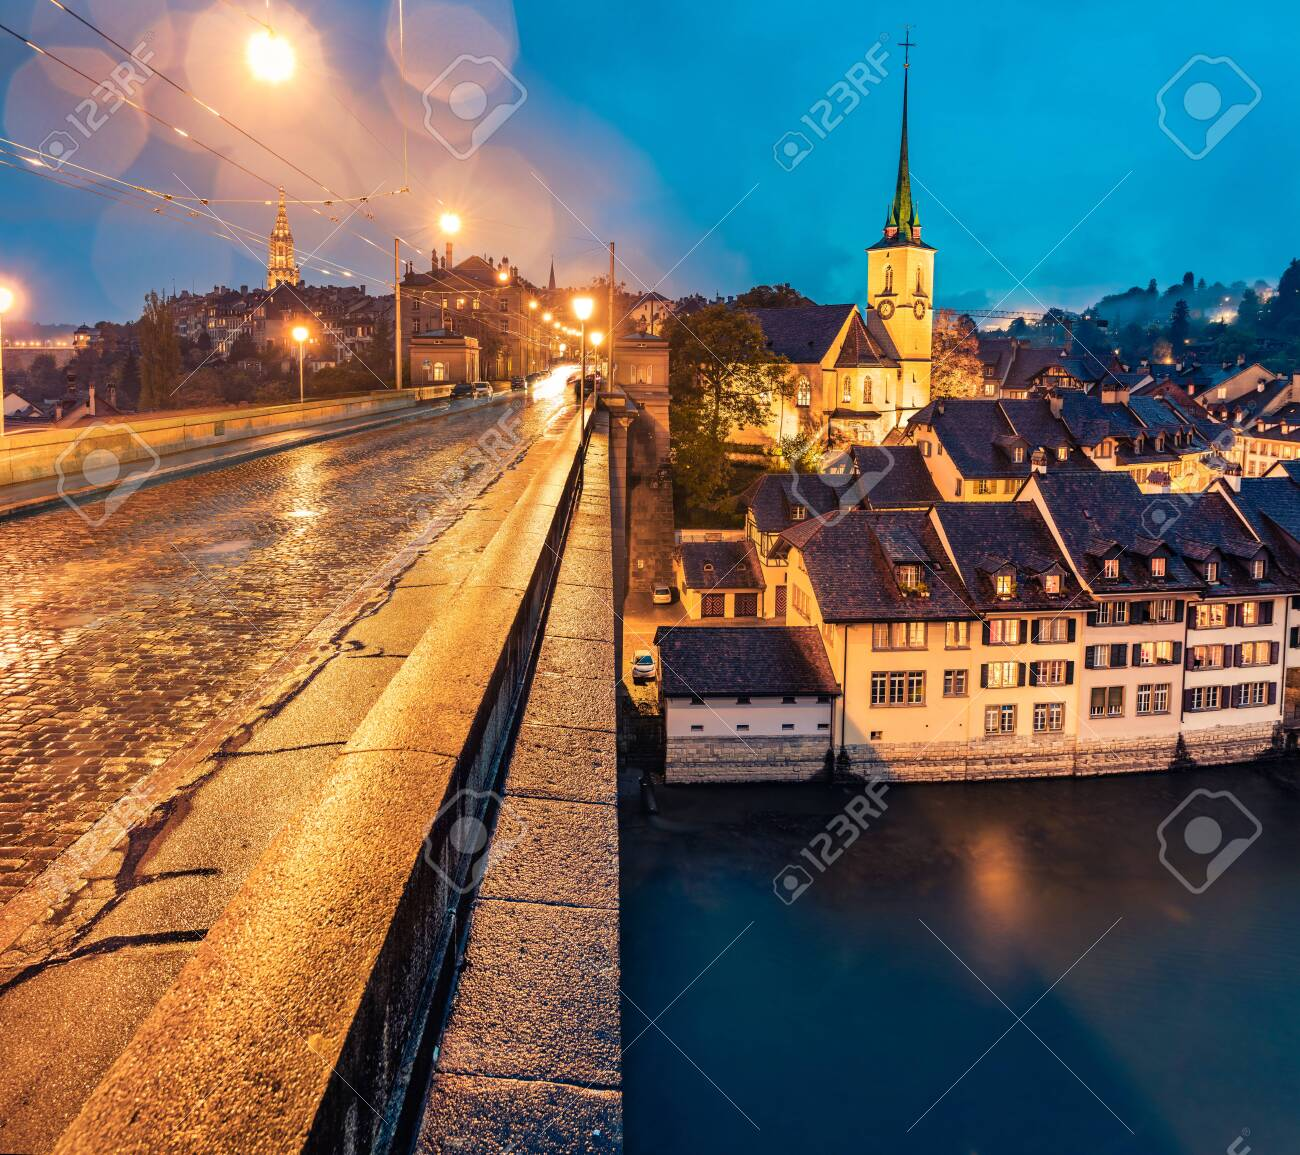 Rainy evening view of Nydeggkirche - Protestant church. Bern town with Cathedral of Bern on background. Gorgeous autumn sunrise in Switzerland, Aare River, Europe. Traveling concept background. - 148650882